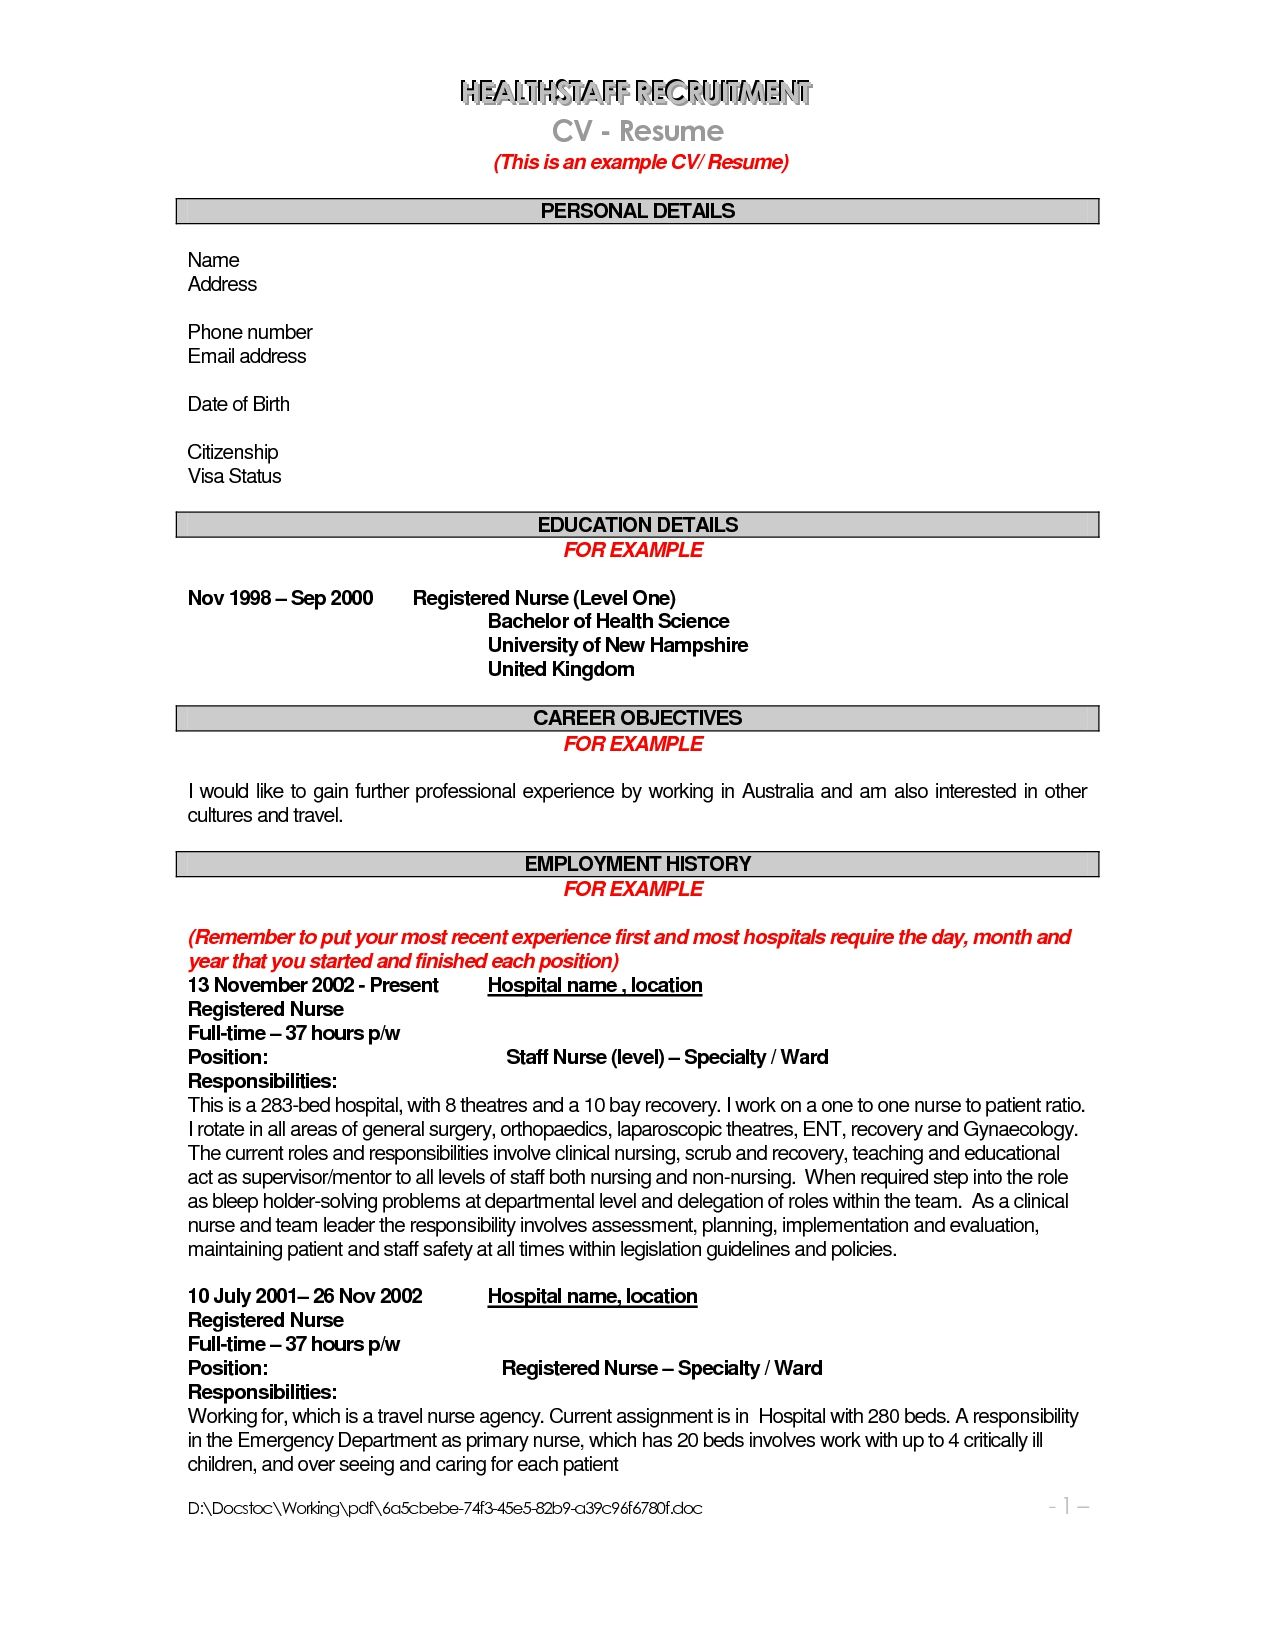 Example Of An Objective On A Resume Prepossessing Resume Job Description Cover Letter Template Sample Resumes .